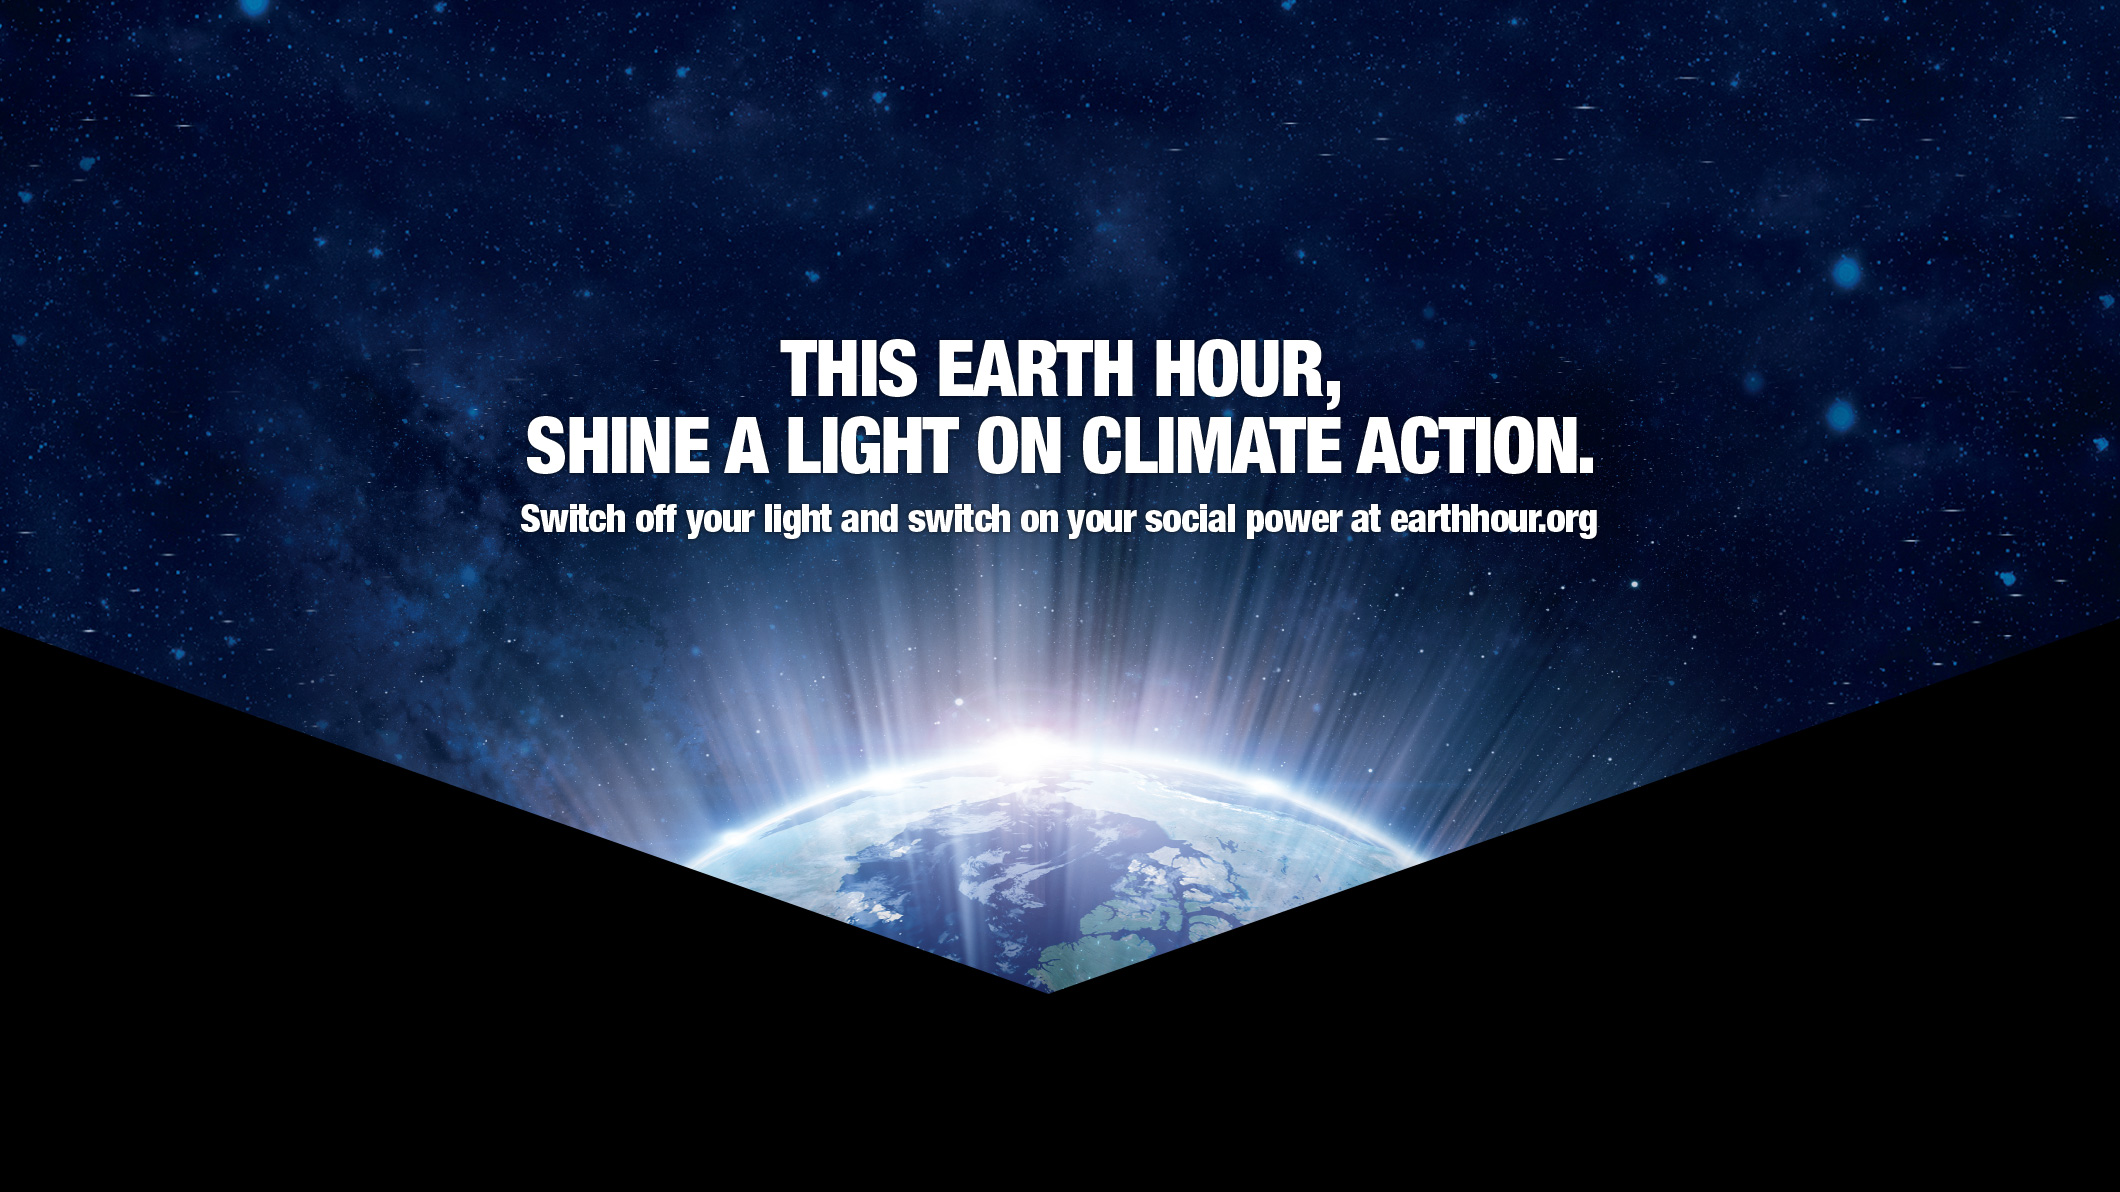 Image result for world wildlife fund climate change lights out